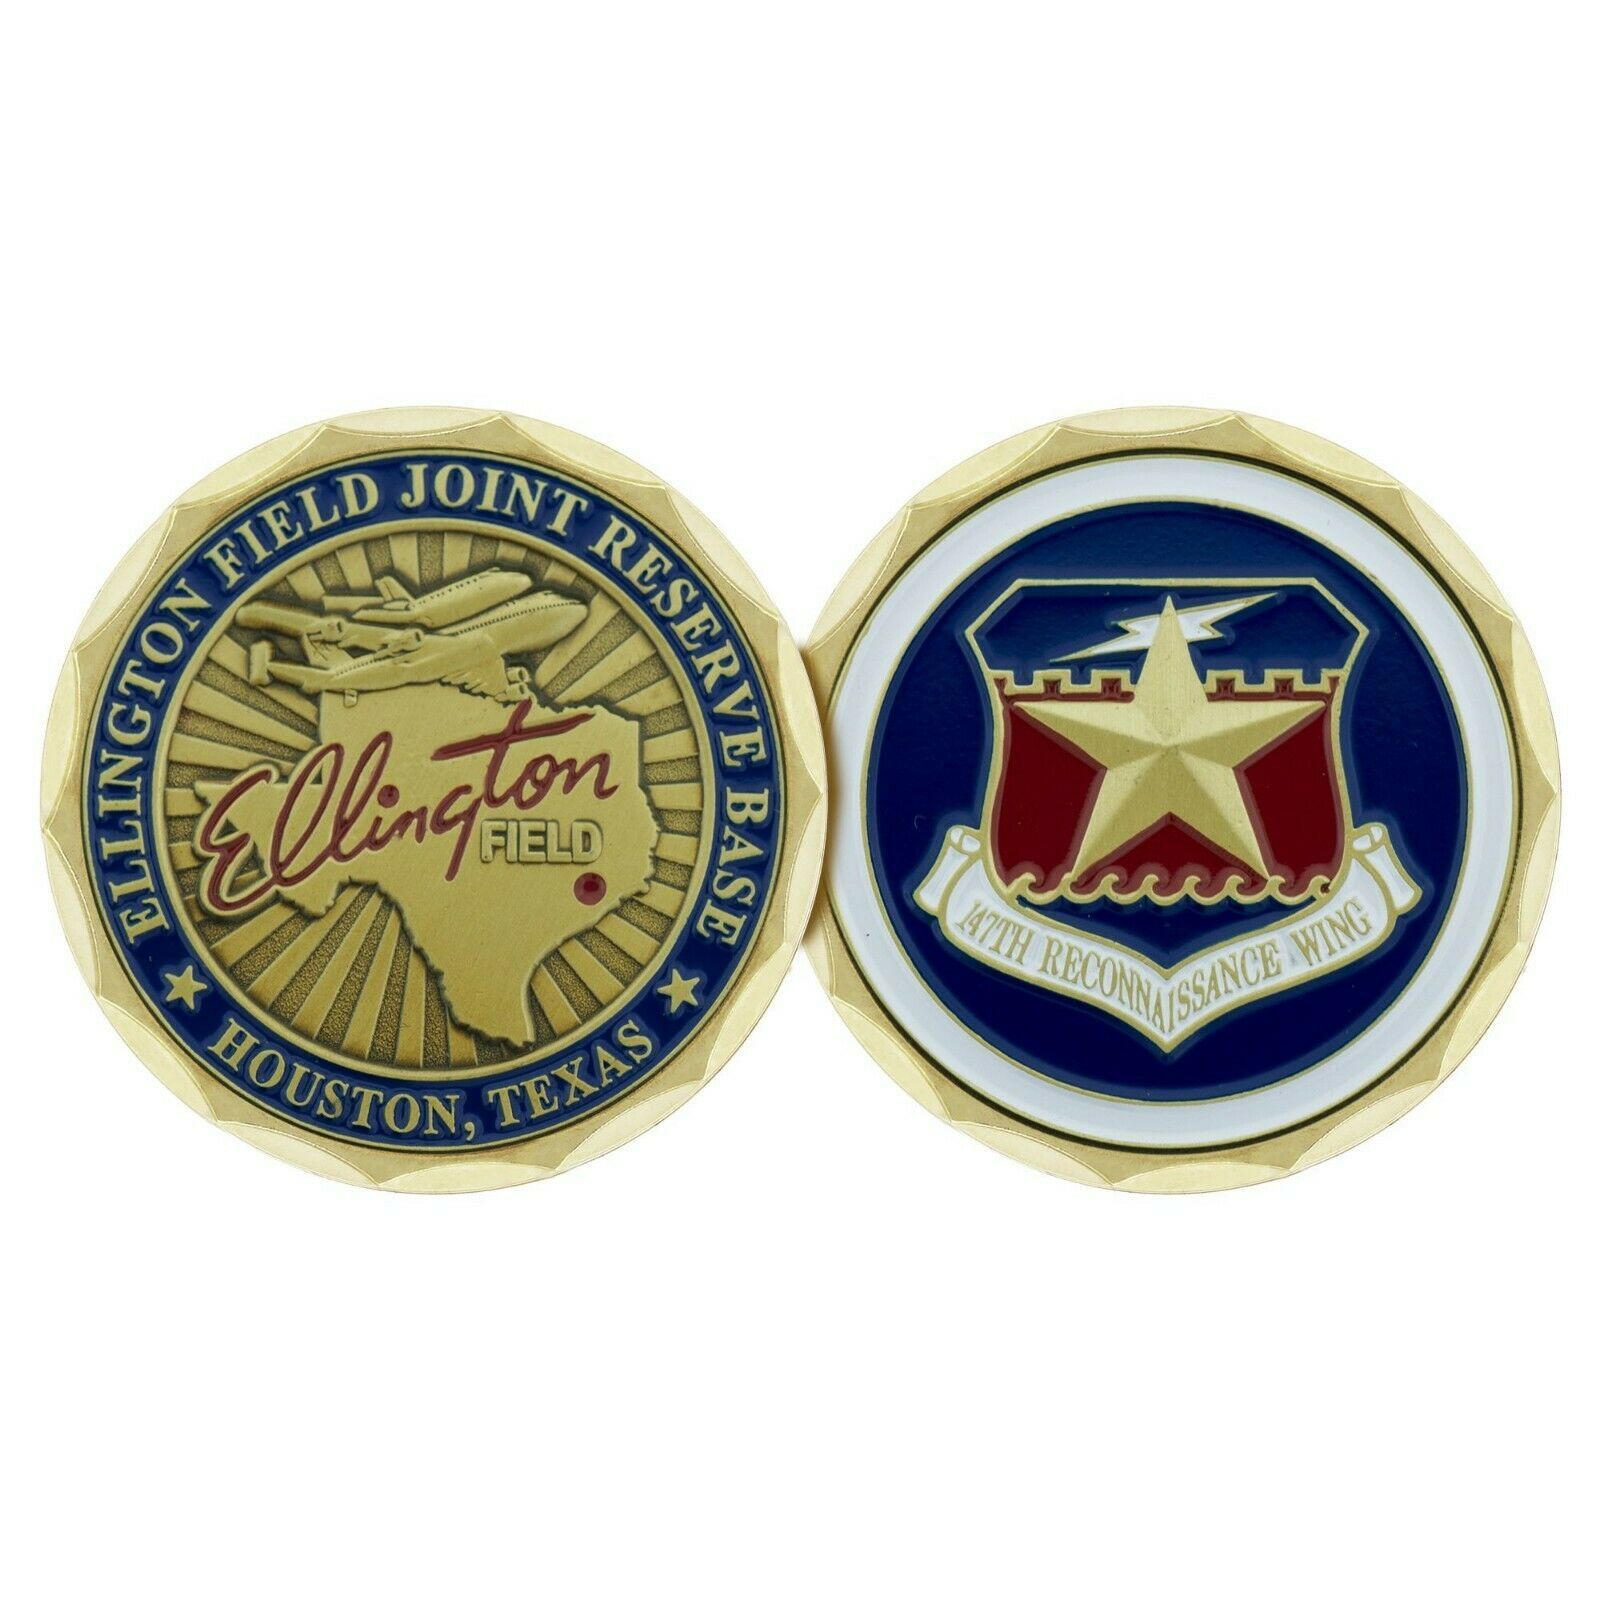 "ELLINGTON FIELD TEXAS JOINT RESERVE BASE AIR FORCE 1.75"" CHALLENGE COIN"